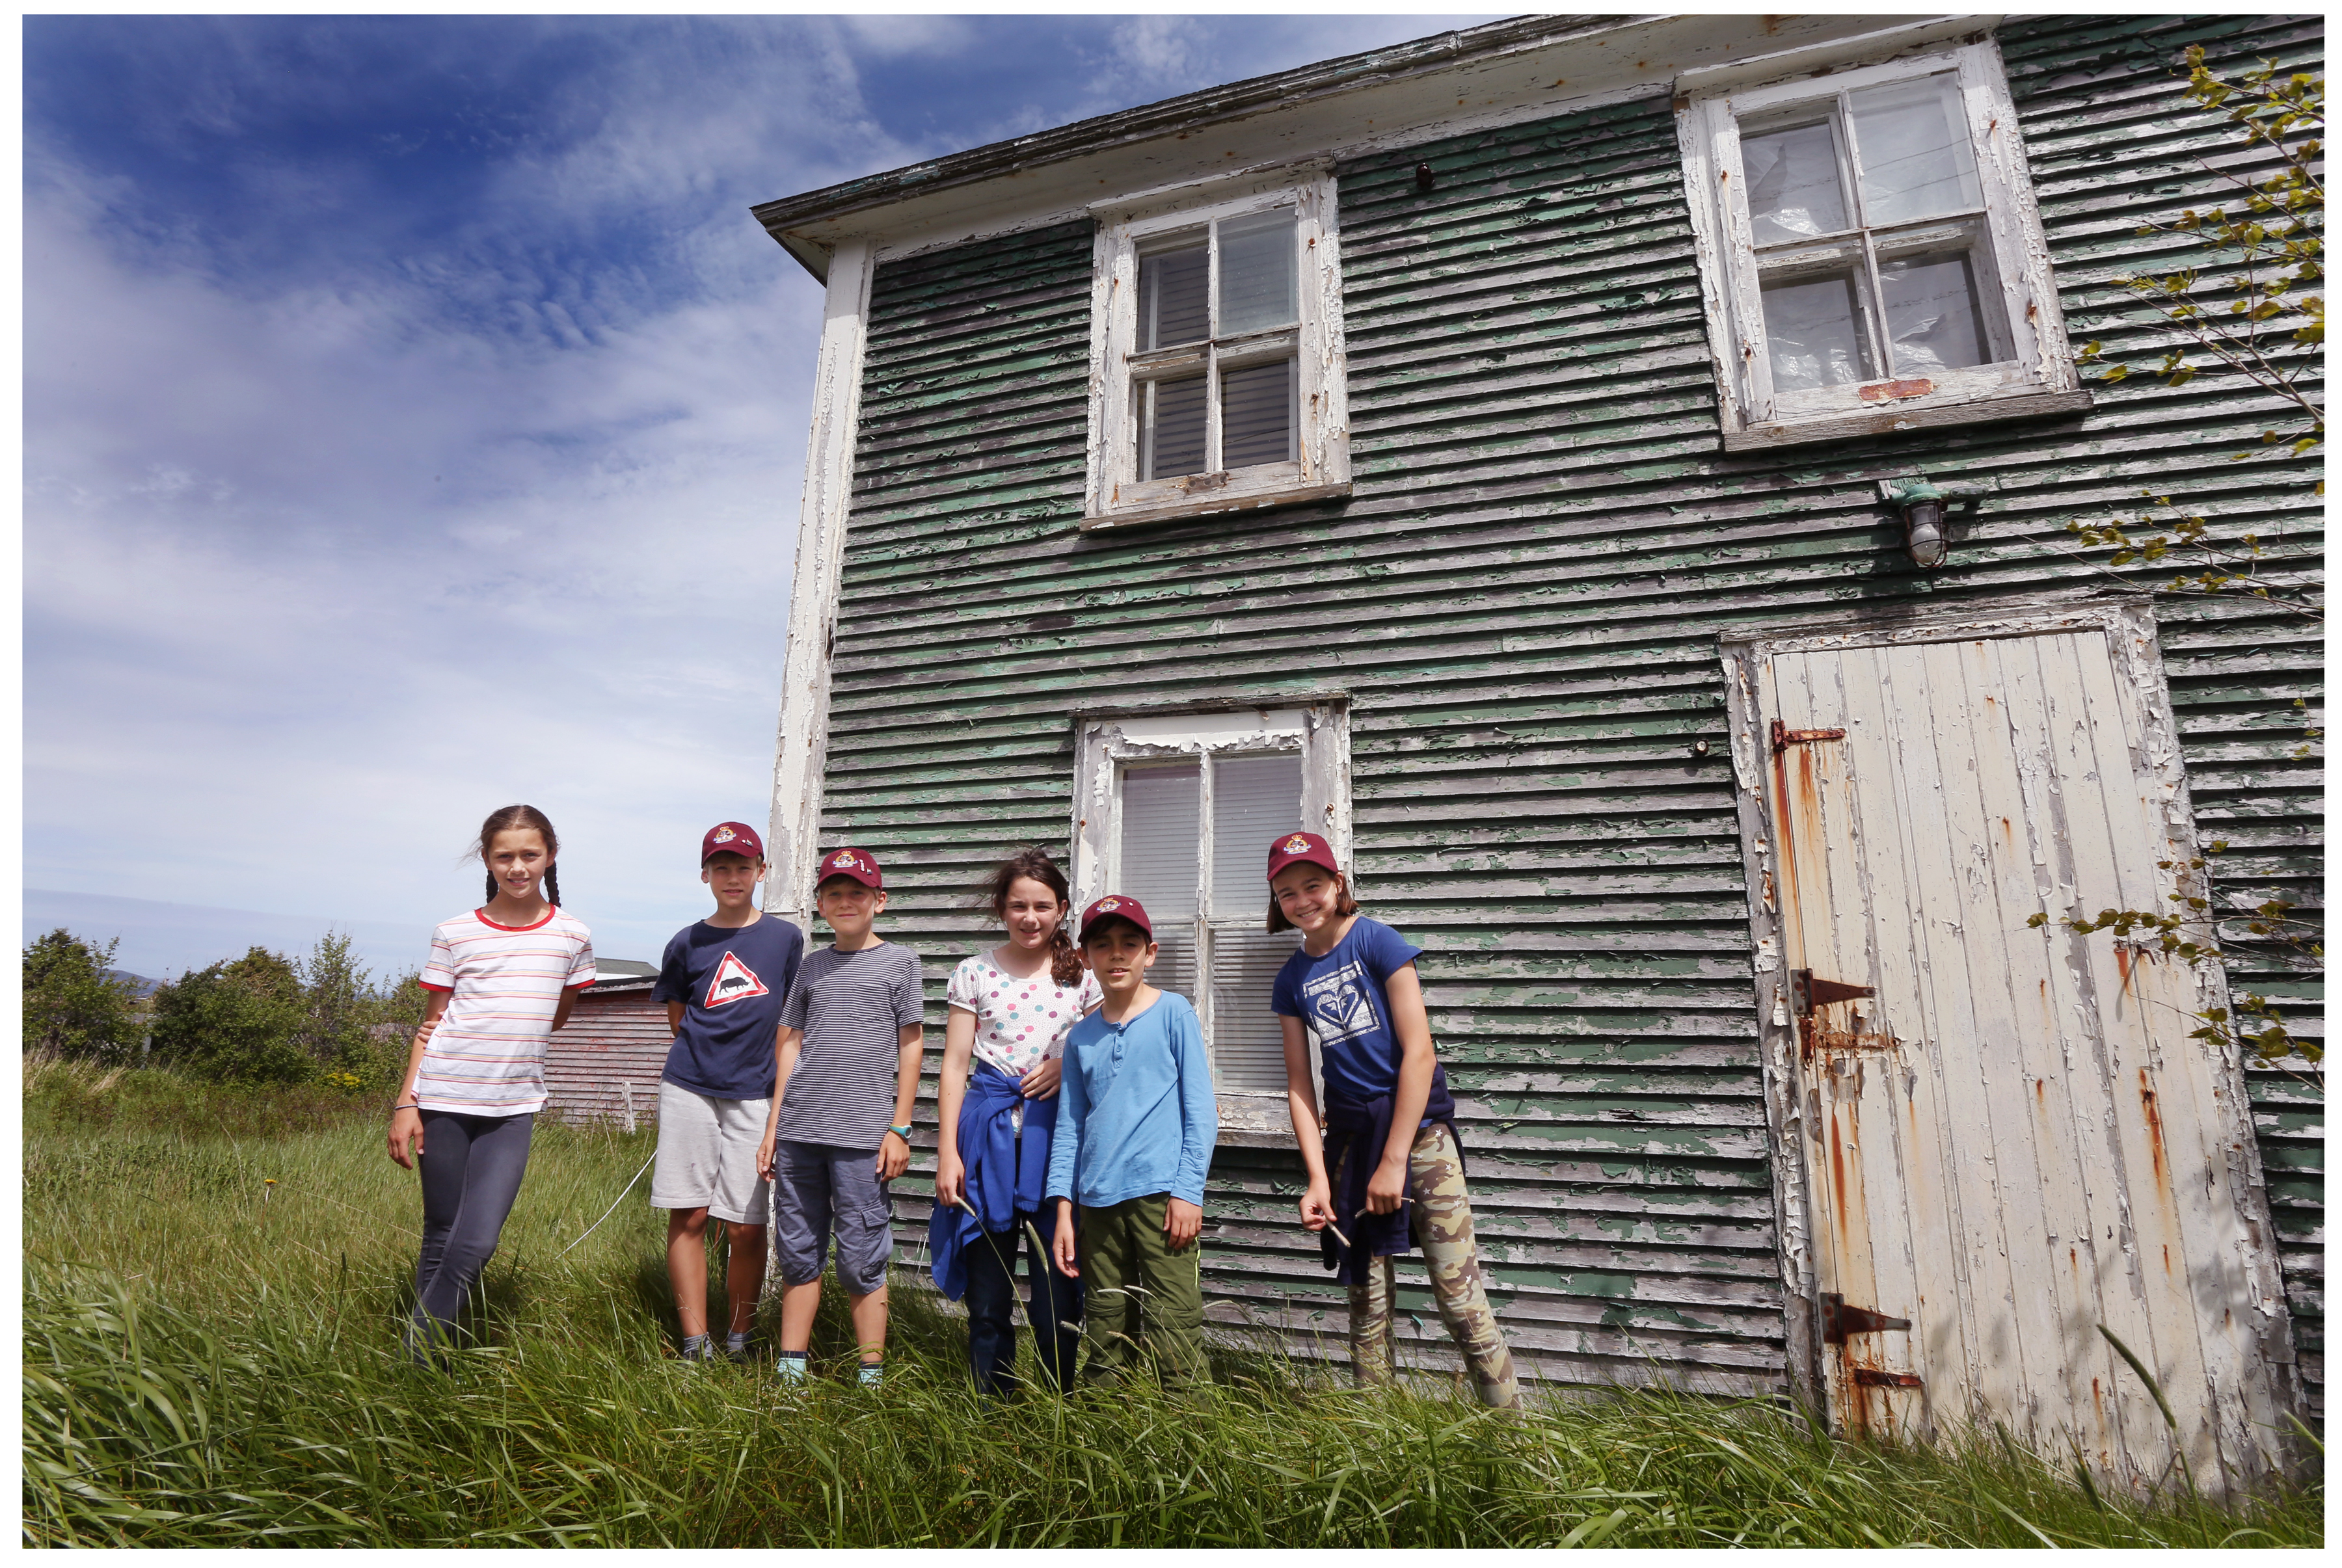 Students Sophia Anderson, George Overy, Oscar Heard, Alice Goldberger, Sasha Cellino and Zoe Spenceley at the home of Silas Edgecombe in Ochre Pit Cove. (Paul Daly for CBC)